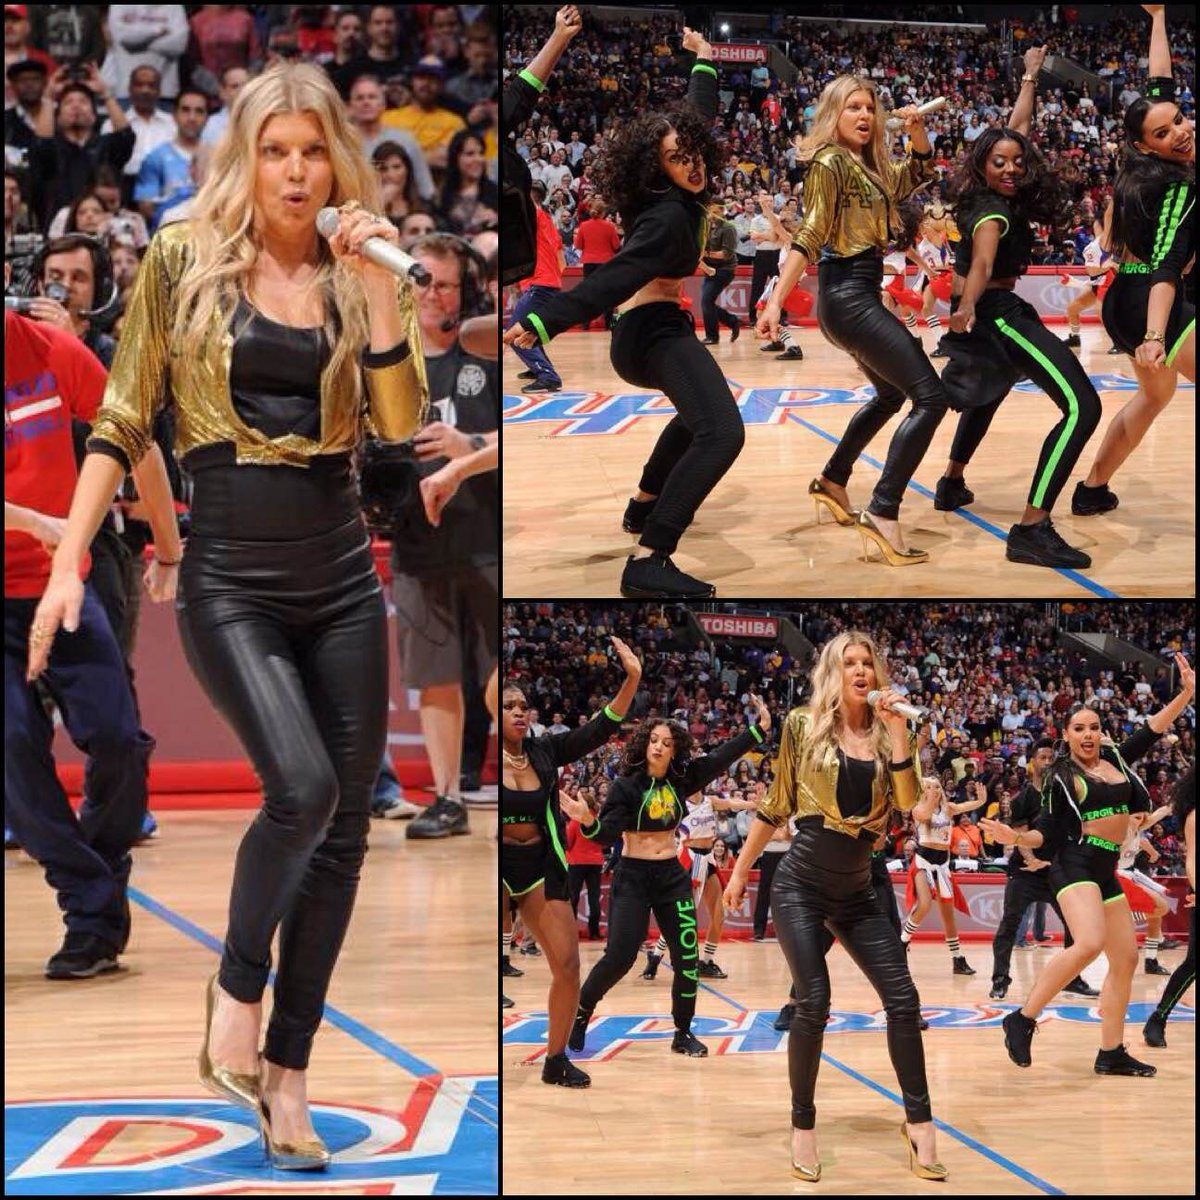 1/7 @Fergie surprised @STAPLESCenter w/ #LALOVE #flashmob in custom #FergieFootwear #goldpumps!http://t.co/fwXdvQ5biC http://t.co/ZN8775gCA4